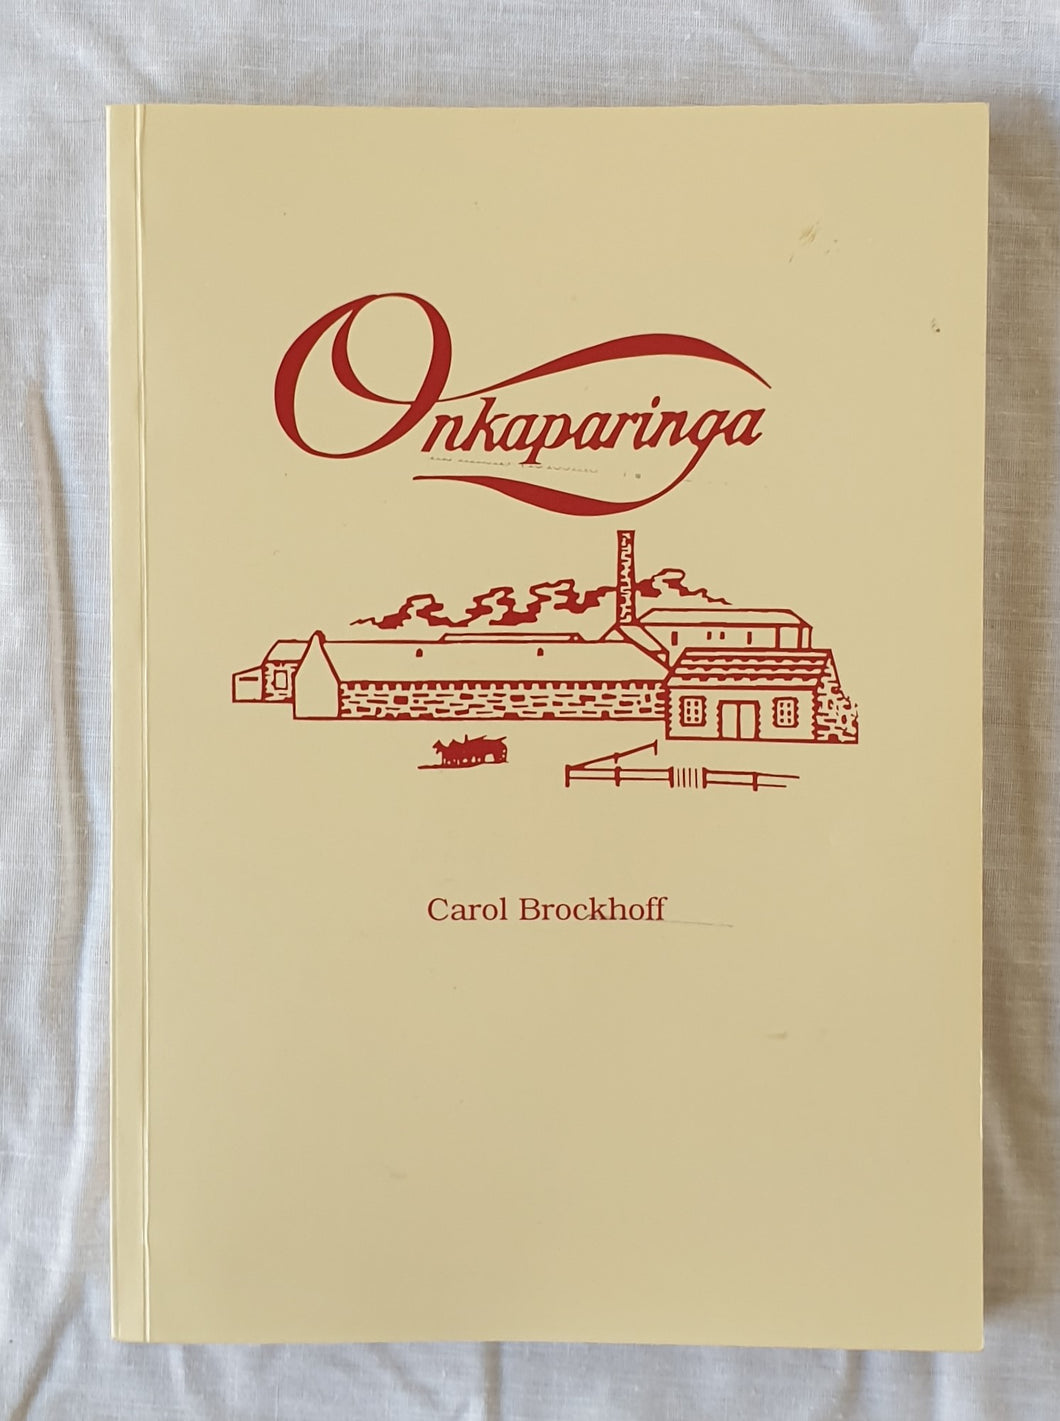 Onkaparinga The Story of a Mill by Carol Brockoff